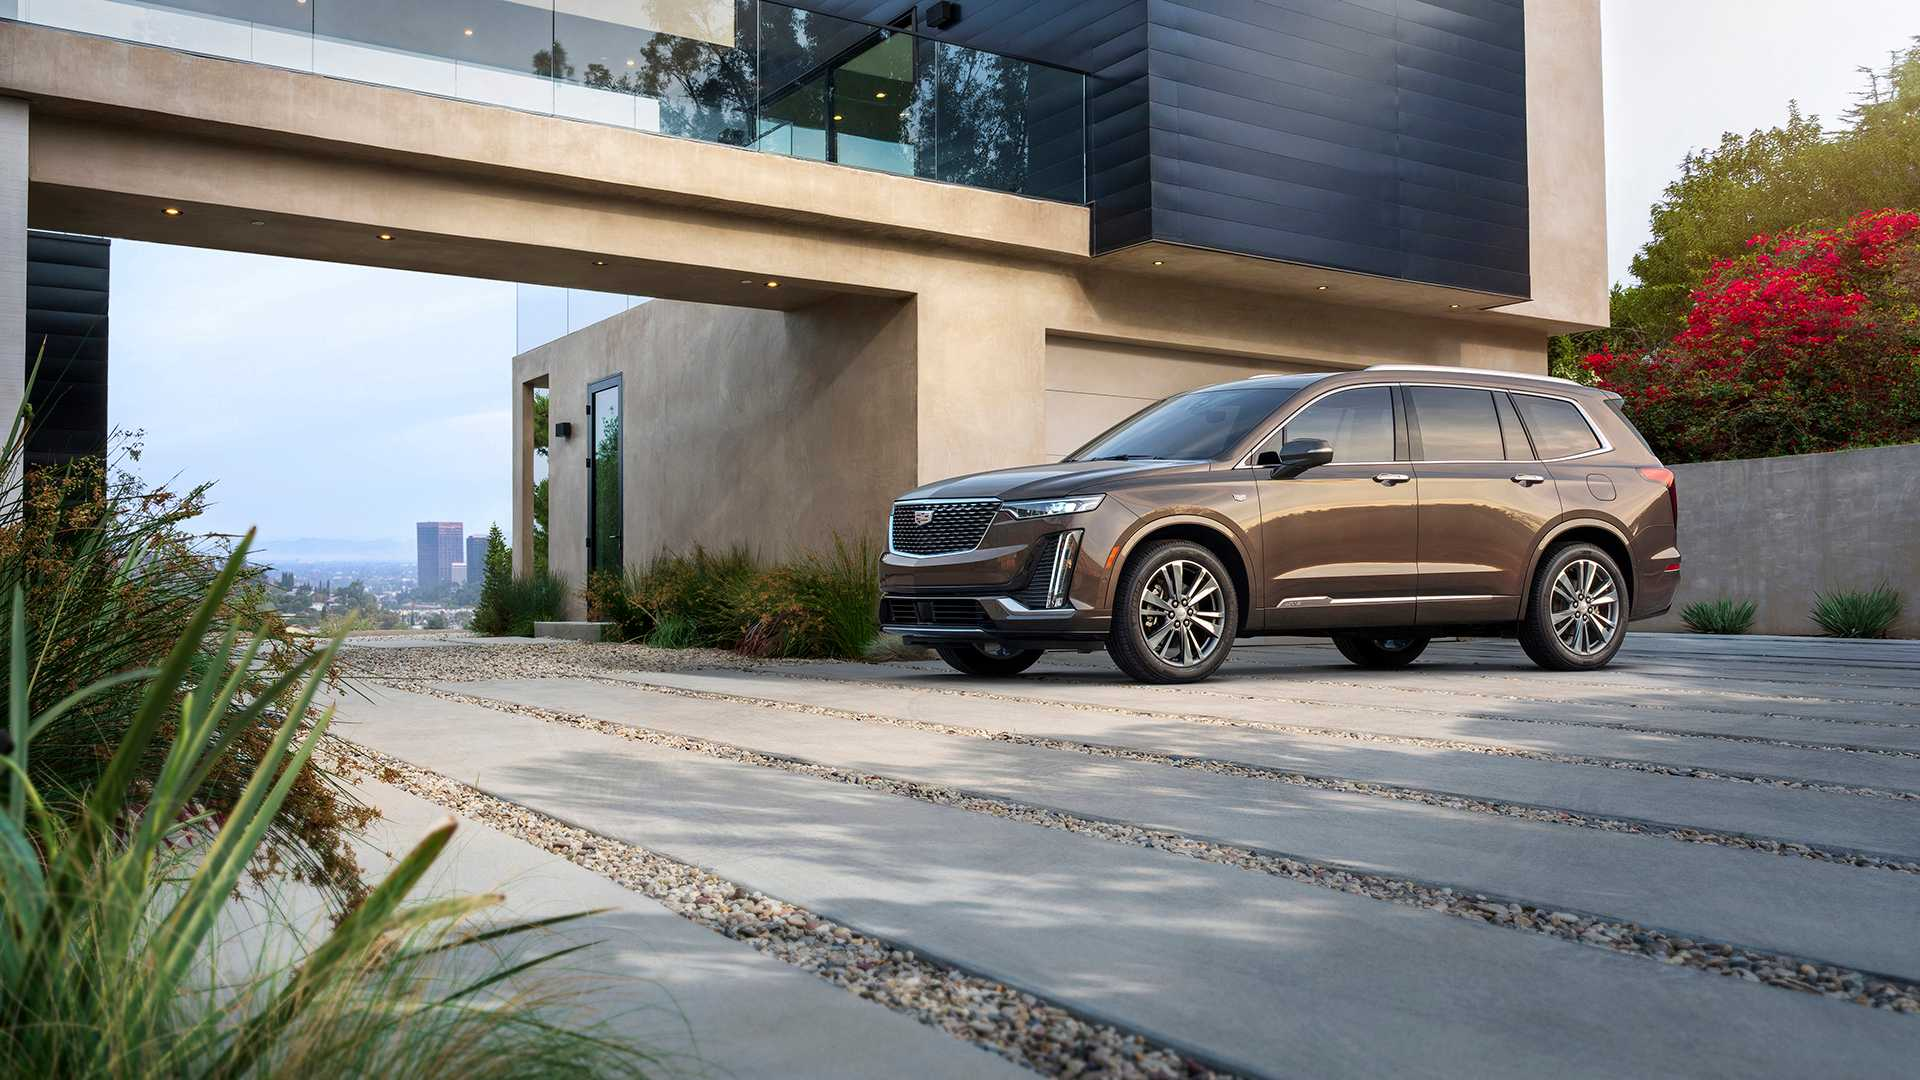 Cadillac Ev Previewed By Three Row Crossover Concept